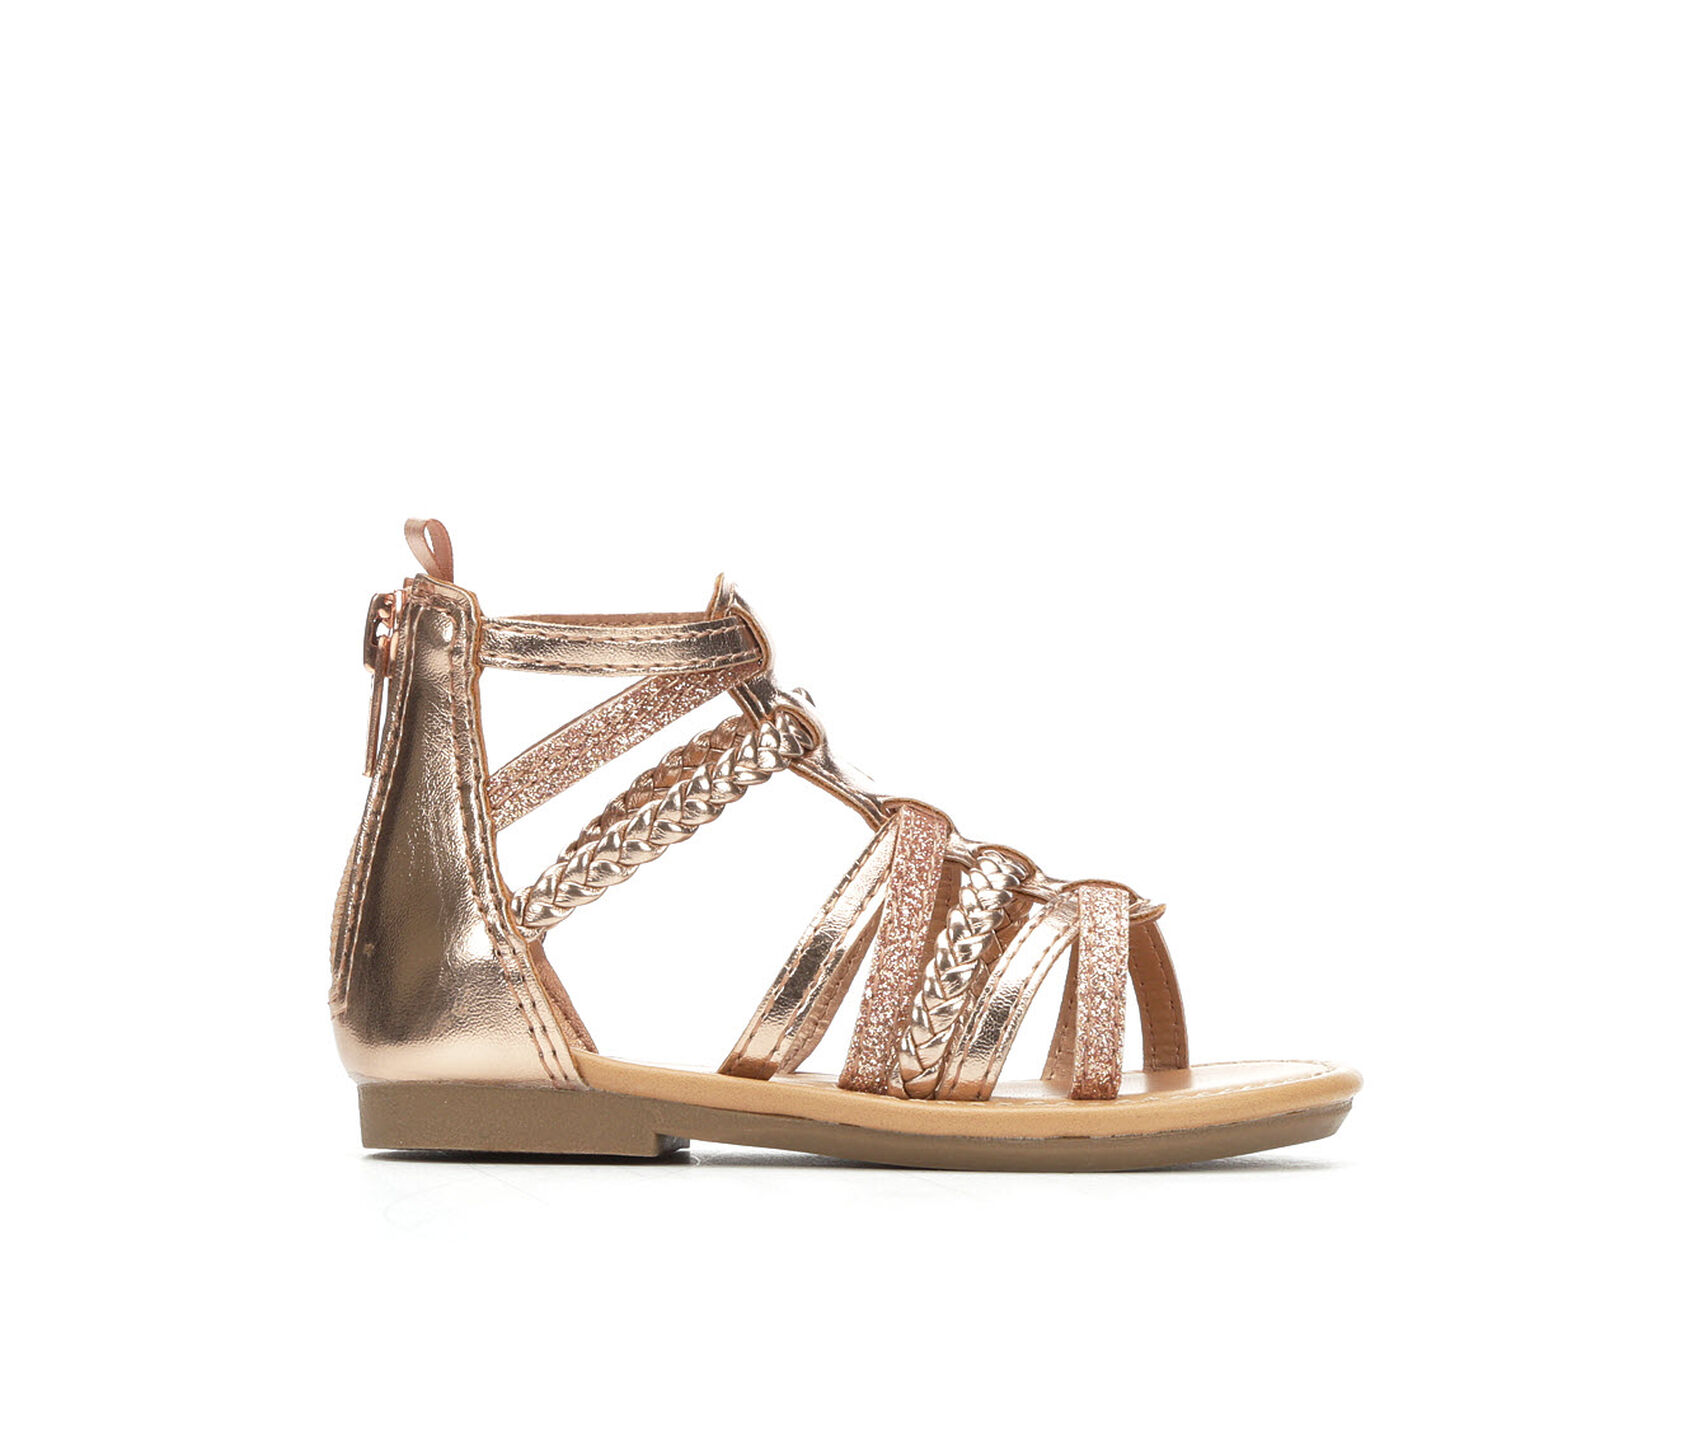 dfca3e4b2 ... Carters Toddler & Little Kid Fenna Gladiator Sandals. Previous